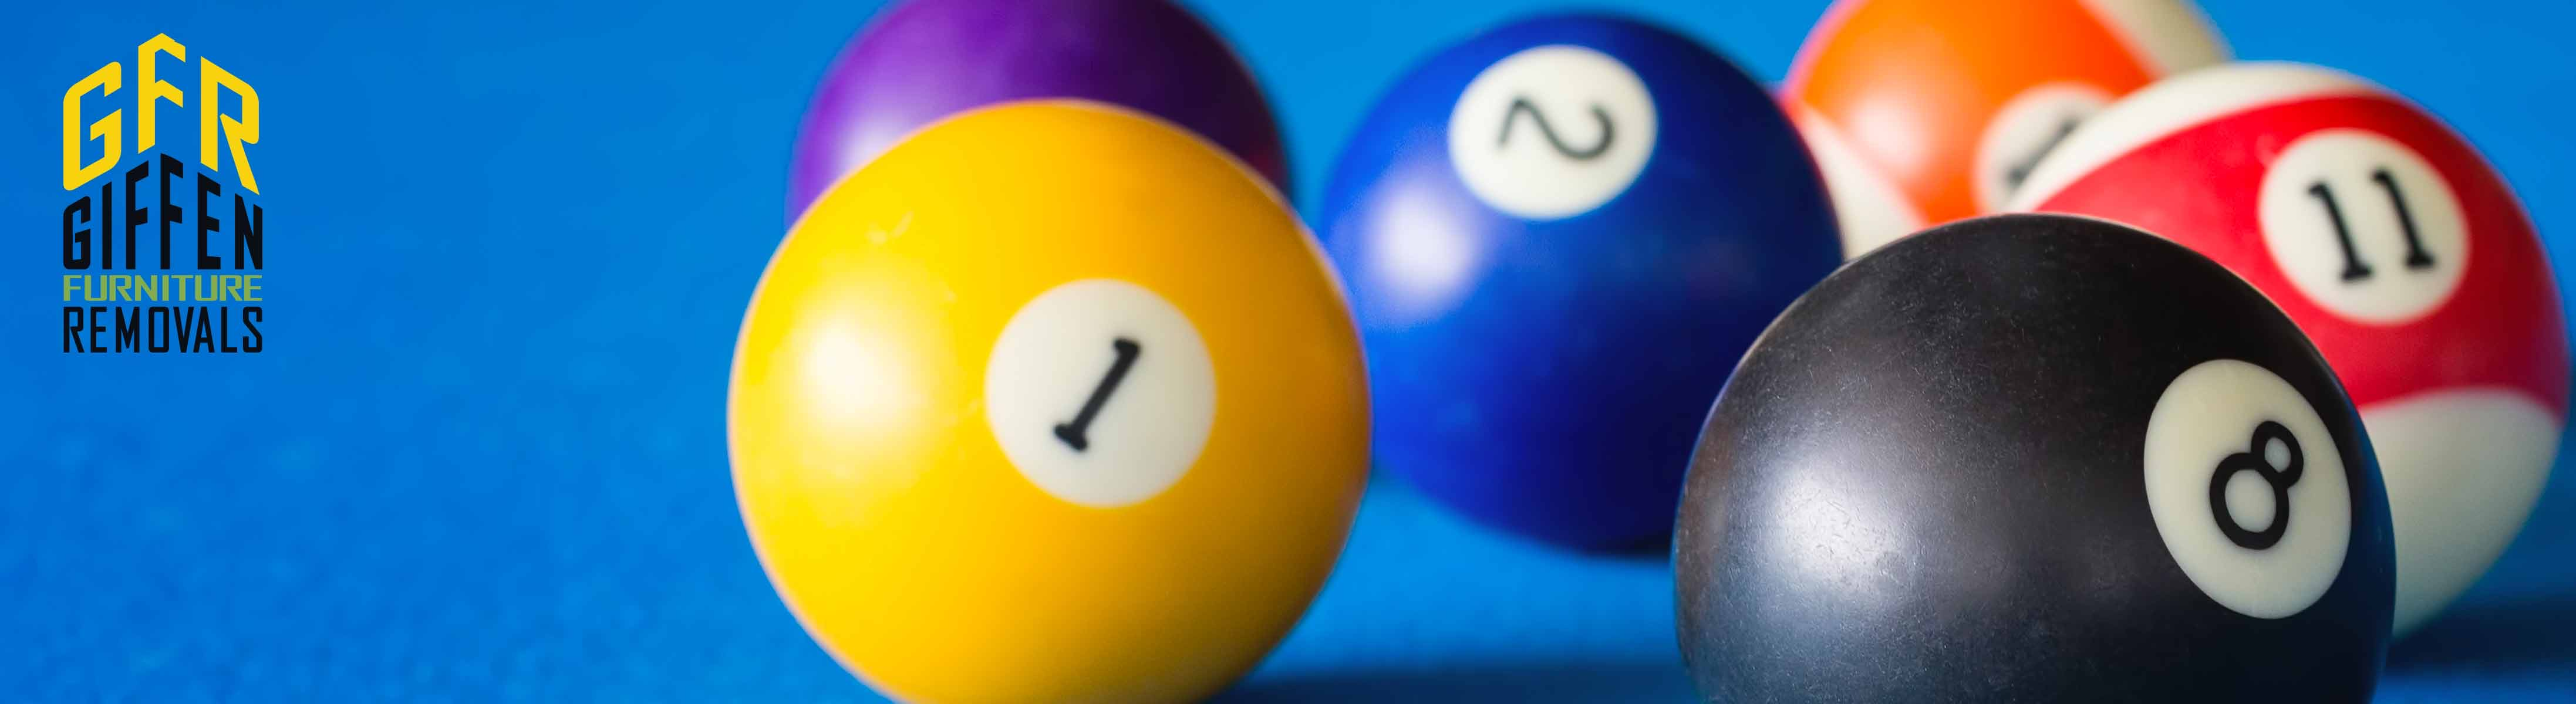 Giffen Furniture Removals What You Should Know When Moving A Pool Table